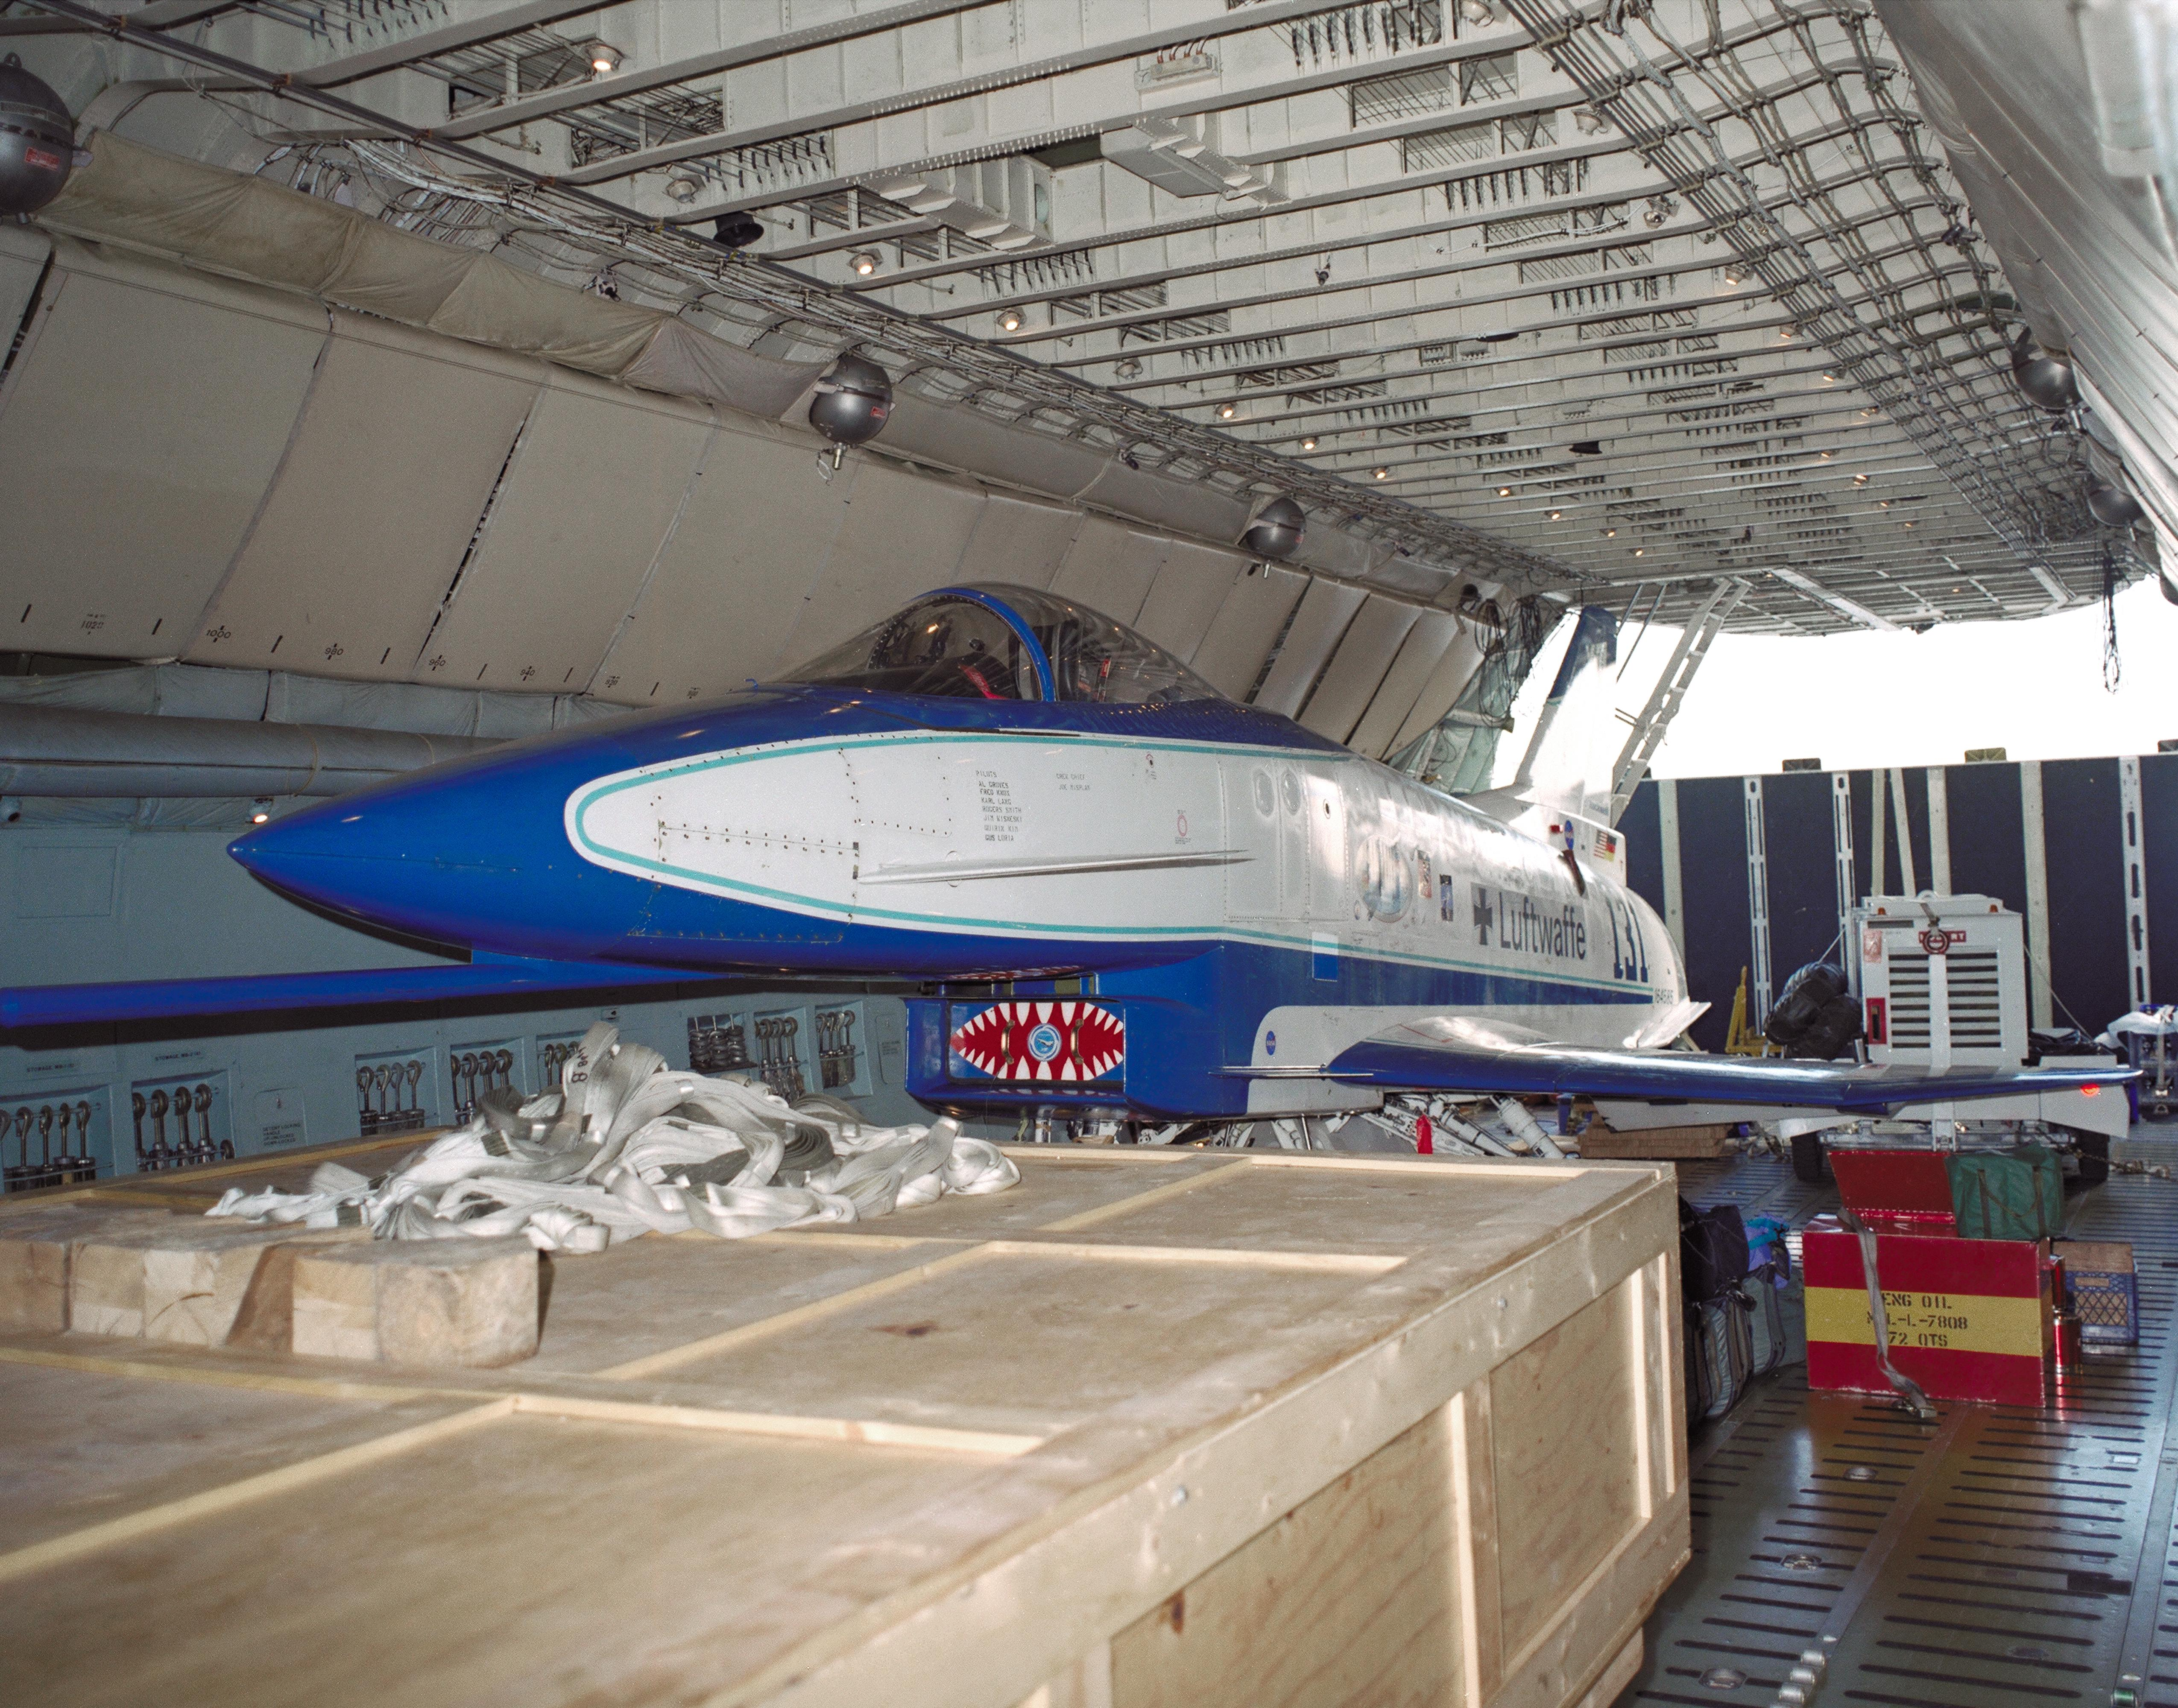 X 31 Secured Inside The Fuselage Of An Air Force Reserve C